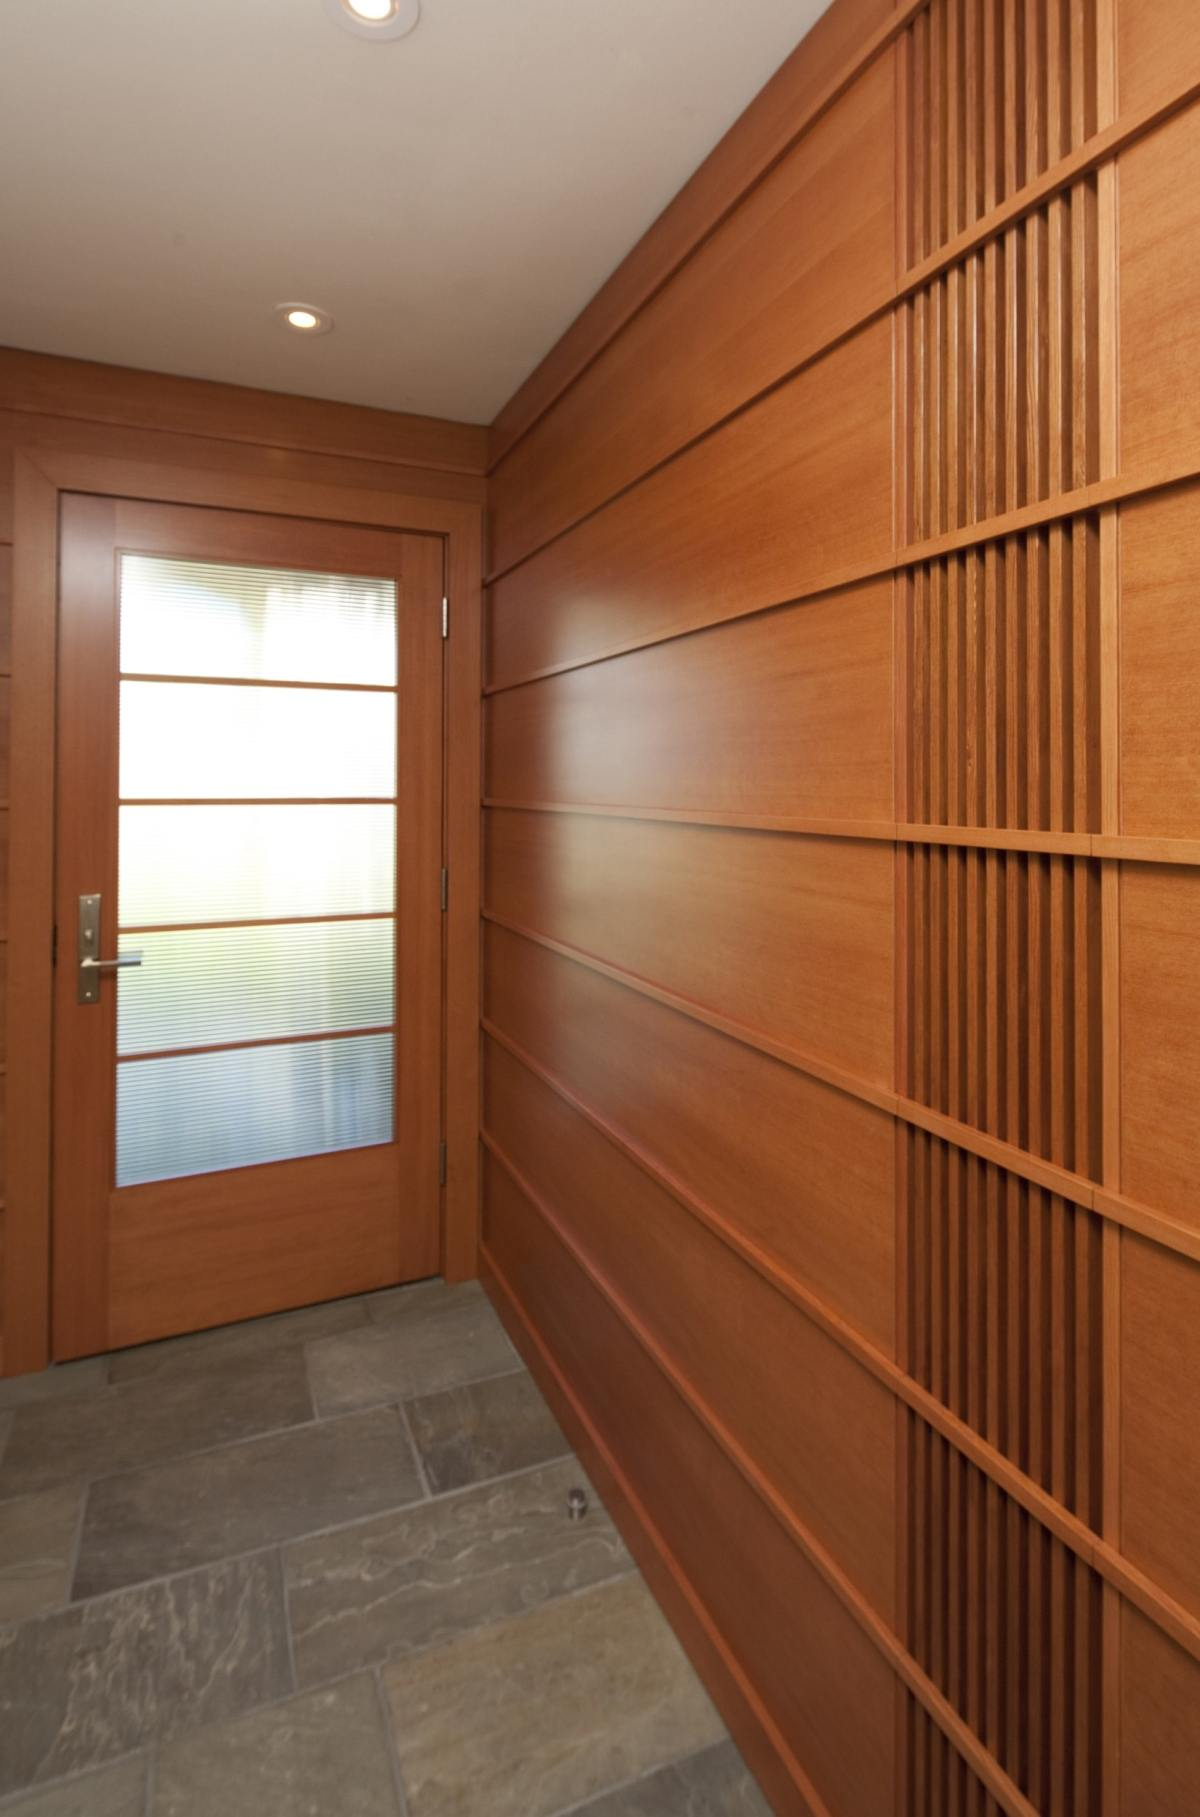 Horizontal and vertical wood detail on hallway wall leading to a frosted glass door